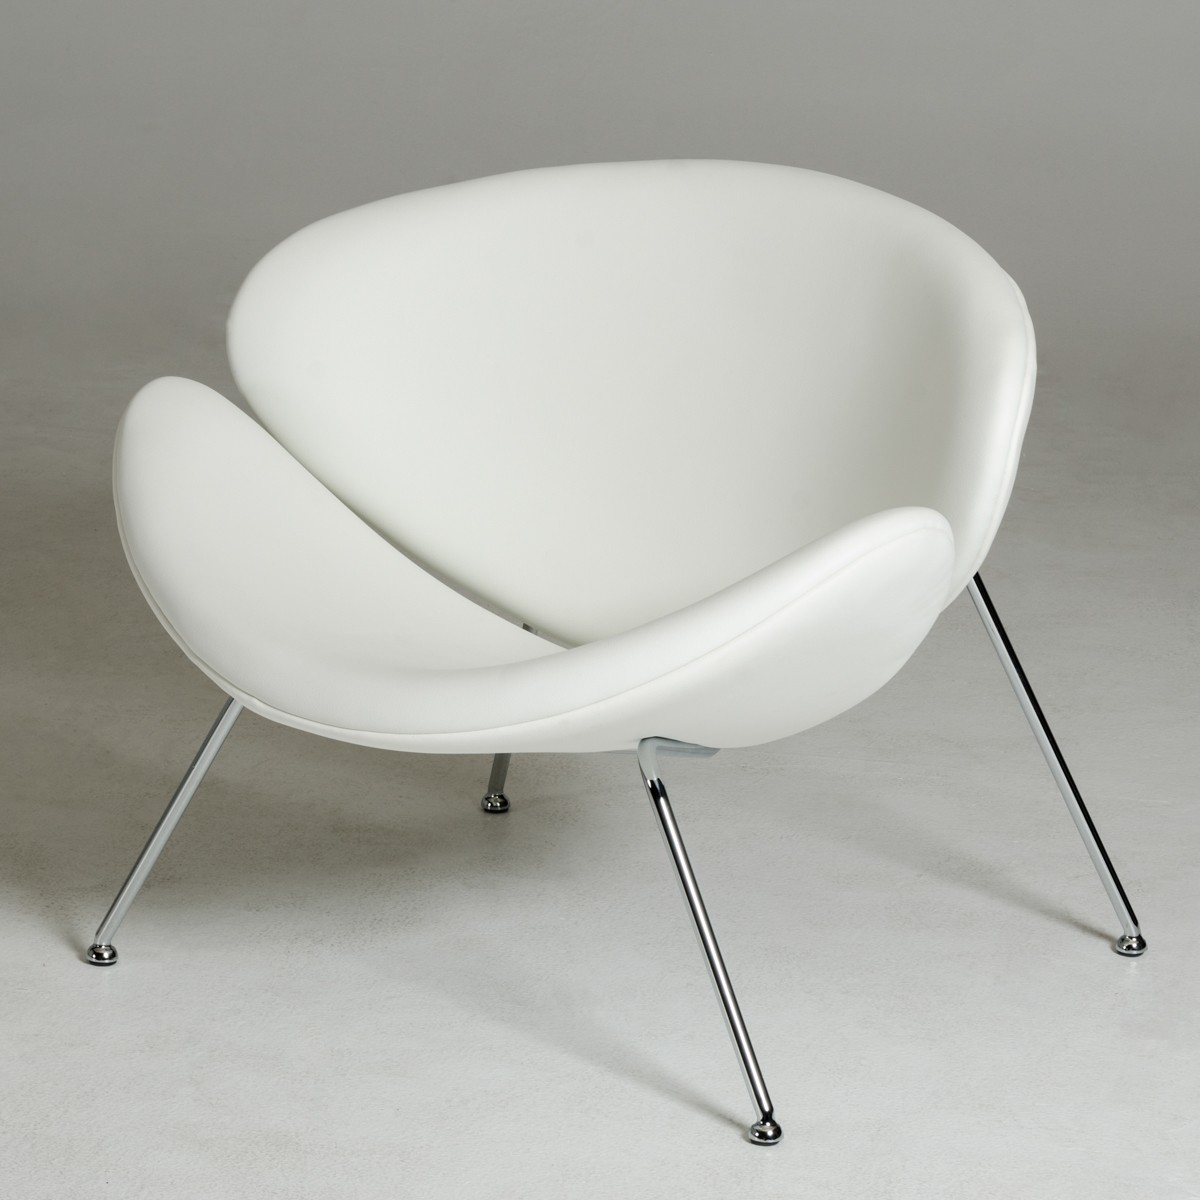 Furniture Legs Dallas Tx contemporary white leatherette stainless steel legs chair dallas